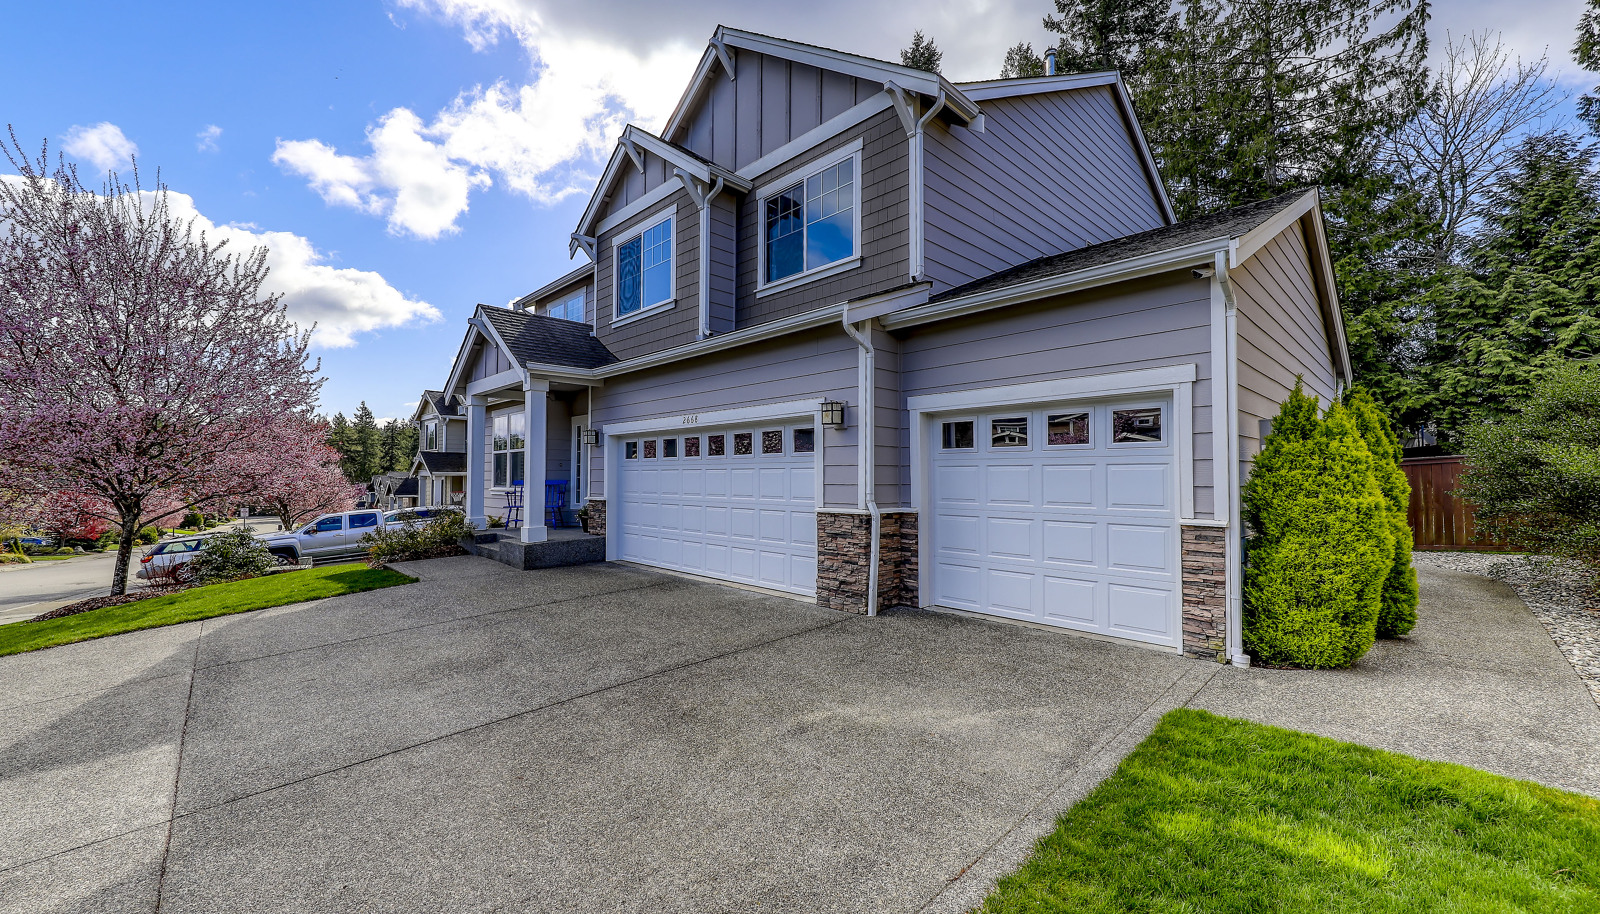 HUGE concrete driveway and 3 car garage with EV Charger!